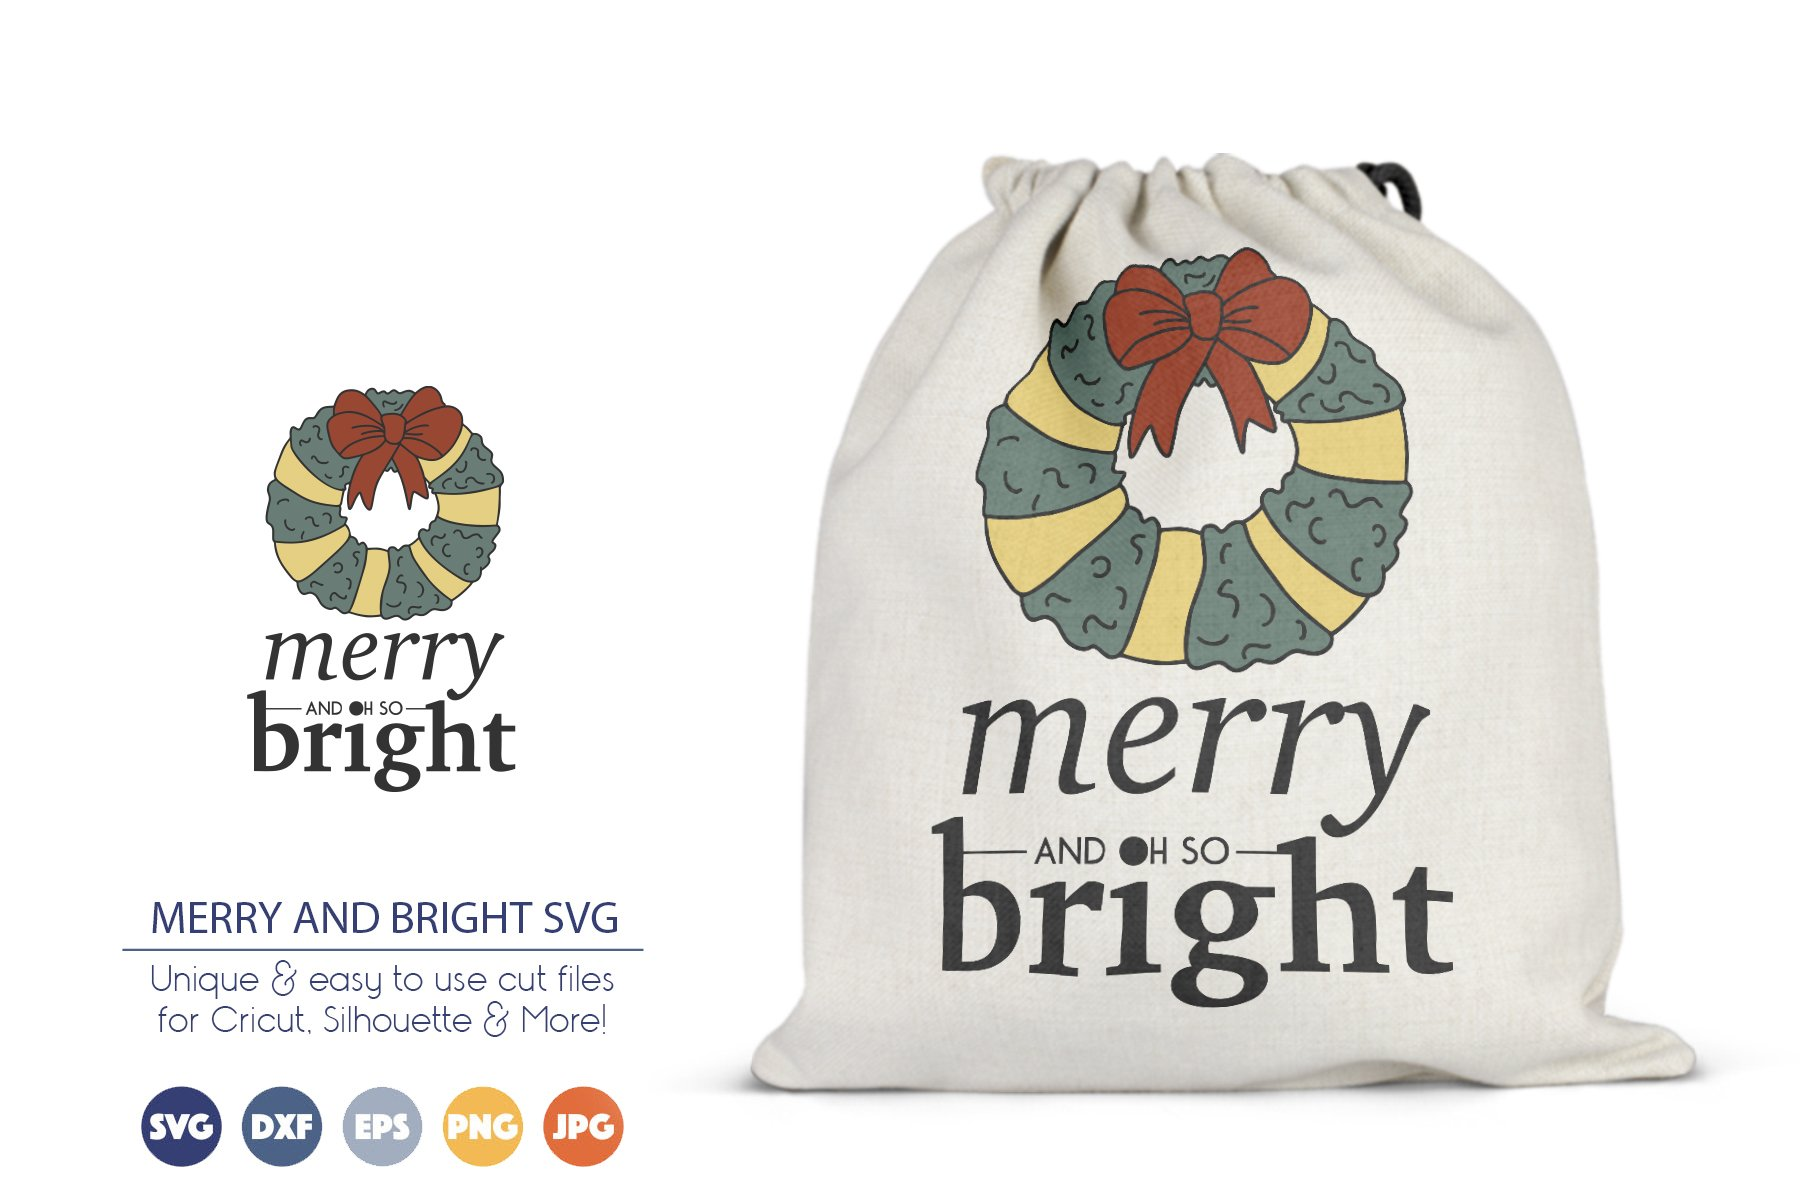 Merry and Bright SVG | Christmas Wreath SVG example image 1